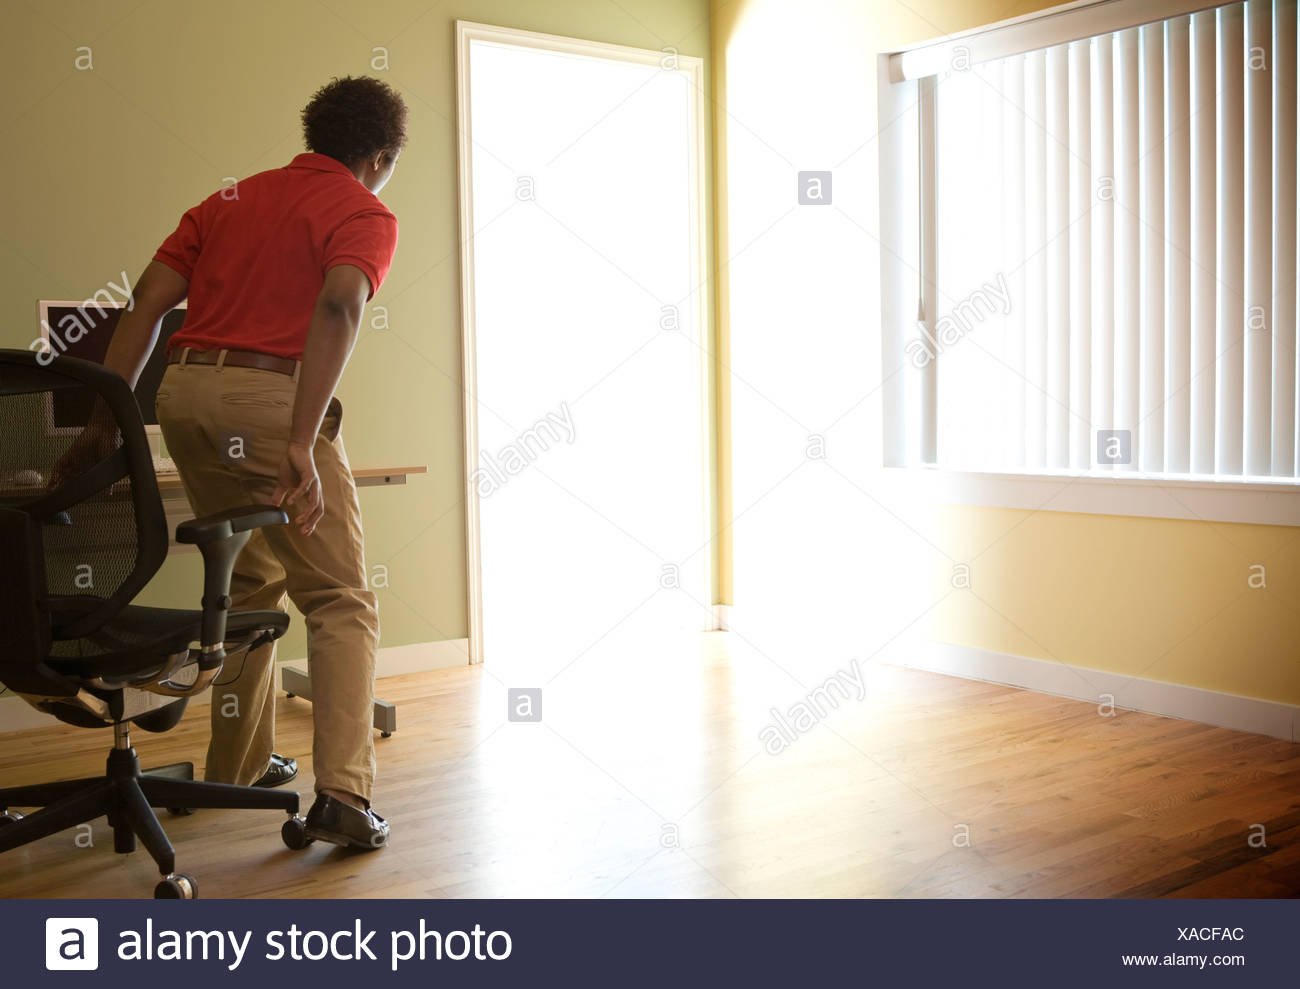 Male office worker standing up from chair to investigate light flooding through doorway - Stock Image